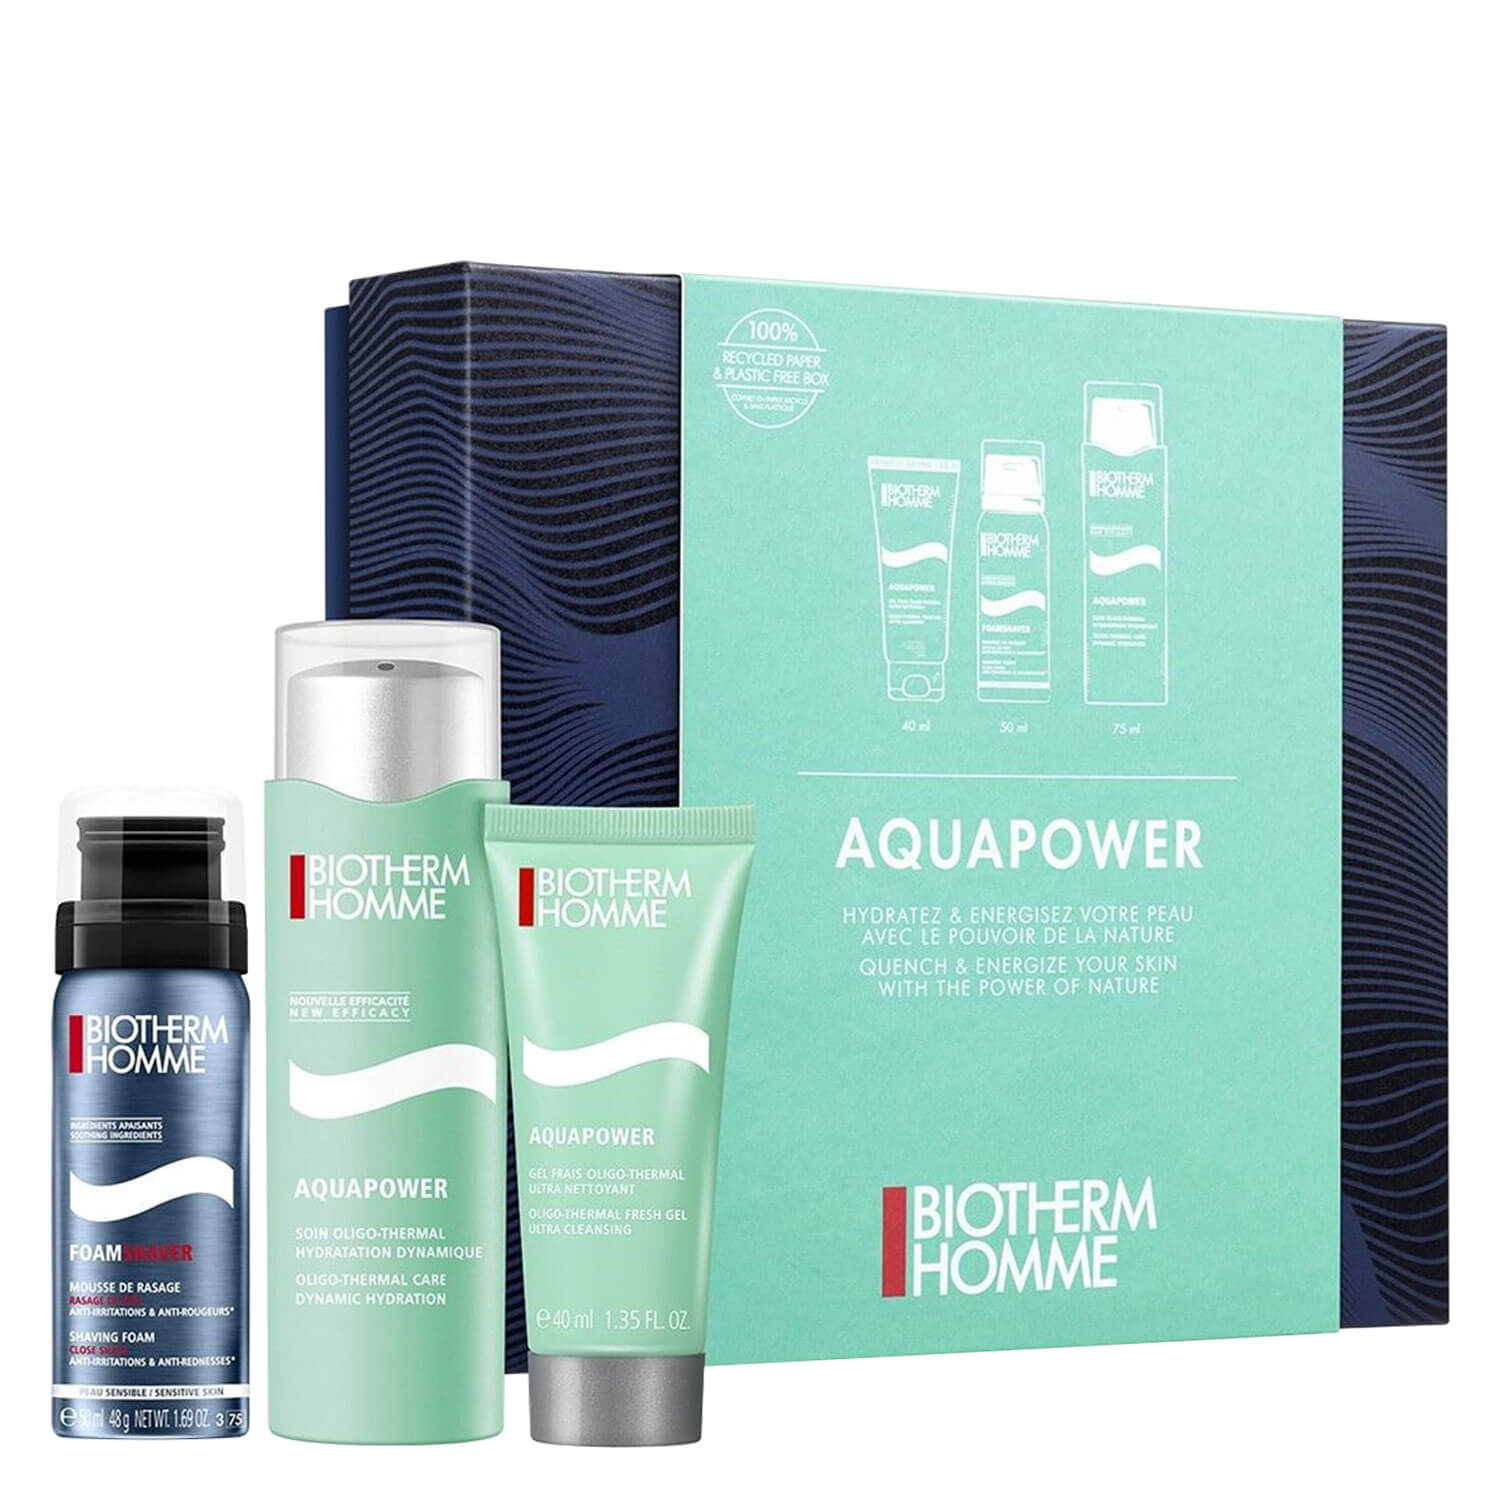 Biotherm Homme - Aquapower Trio Set